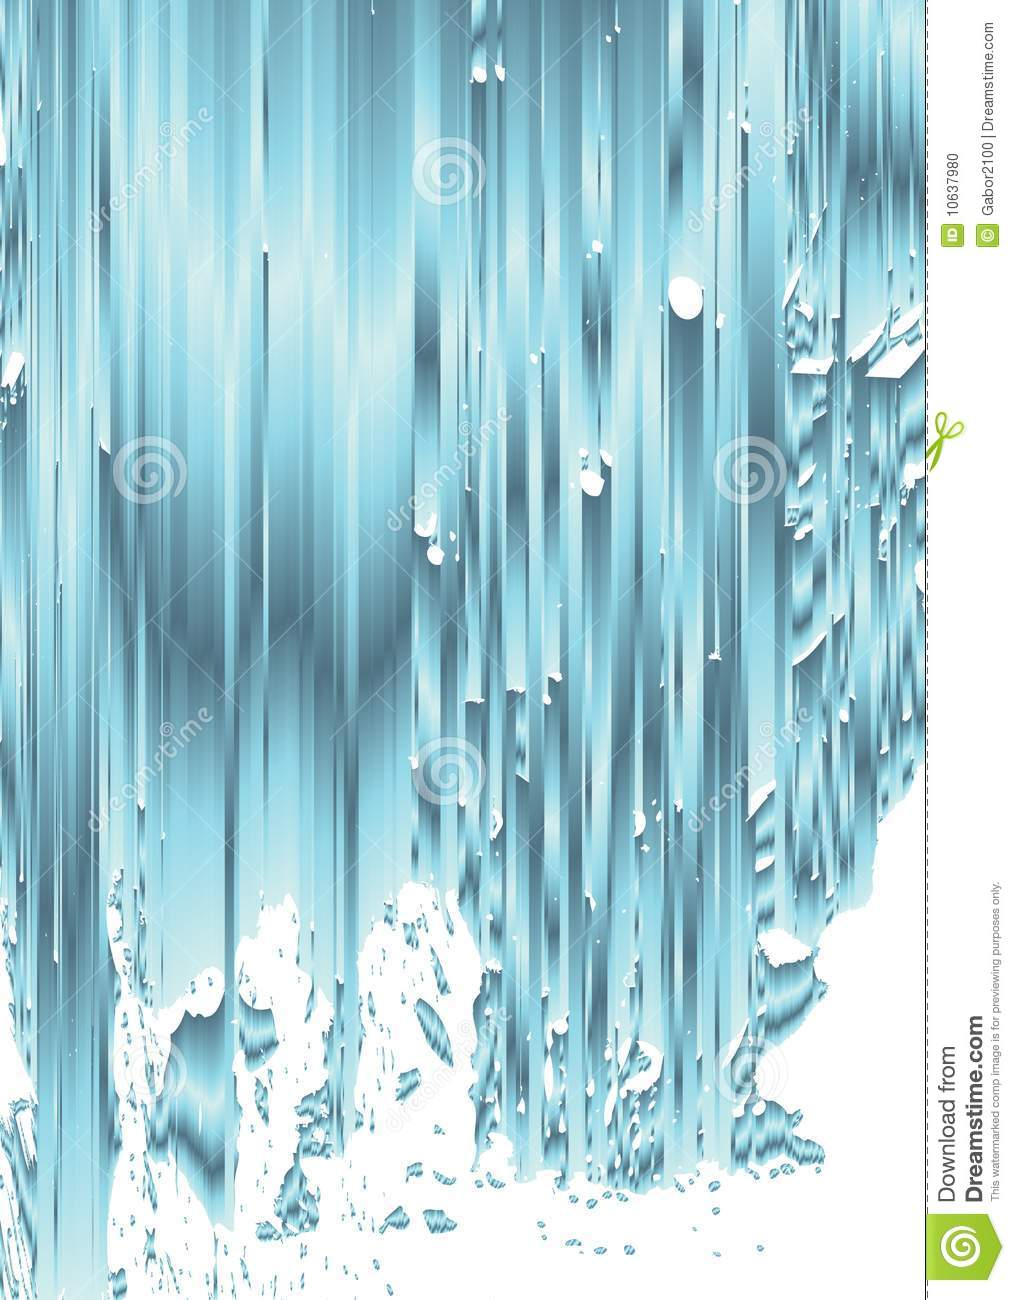 Fall Desktop Wallpaper Illustration Abstract Waterfall Stock Photo Image 10637980